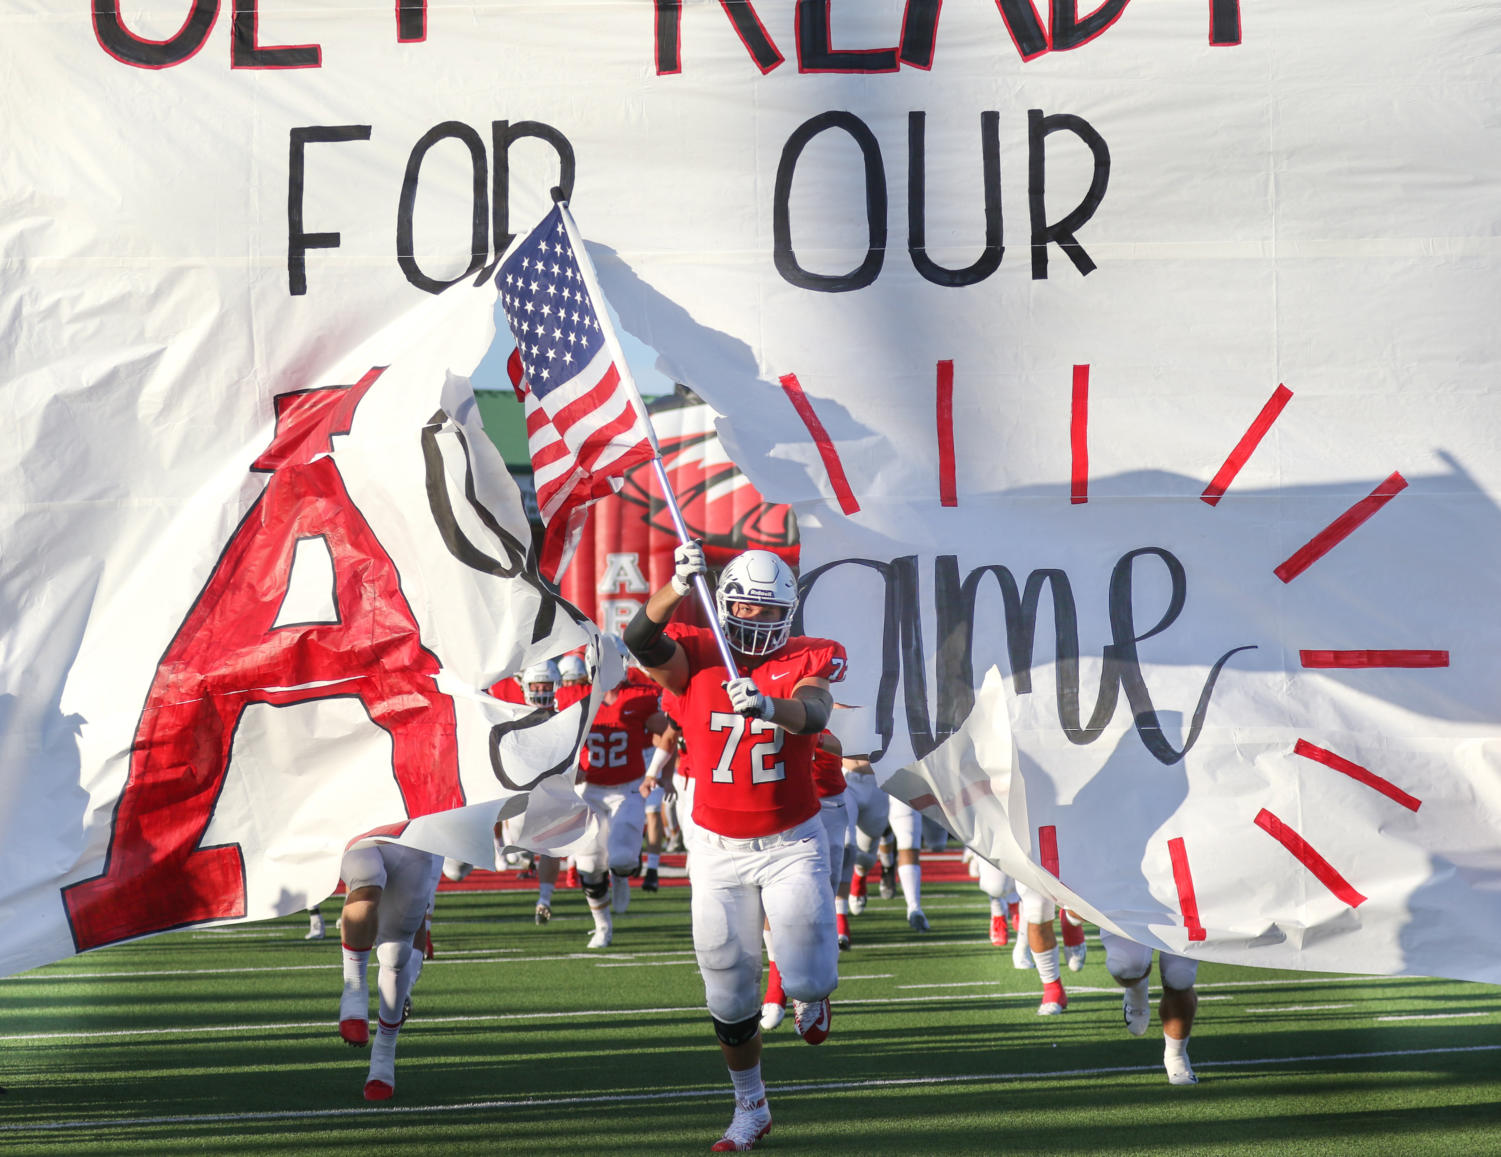 The Eagles play against the Sanger Indians for the Homecoming game at Argyle High School on Oct. 8, 2018. (Jordyn Tarrant / The Talon News)